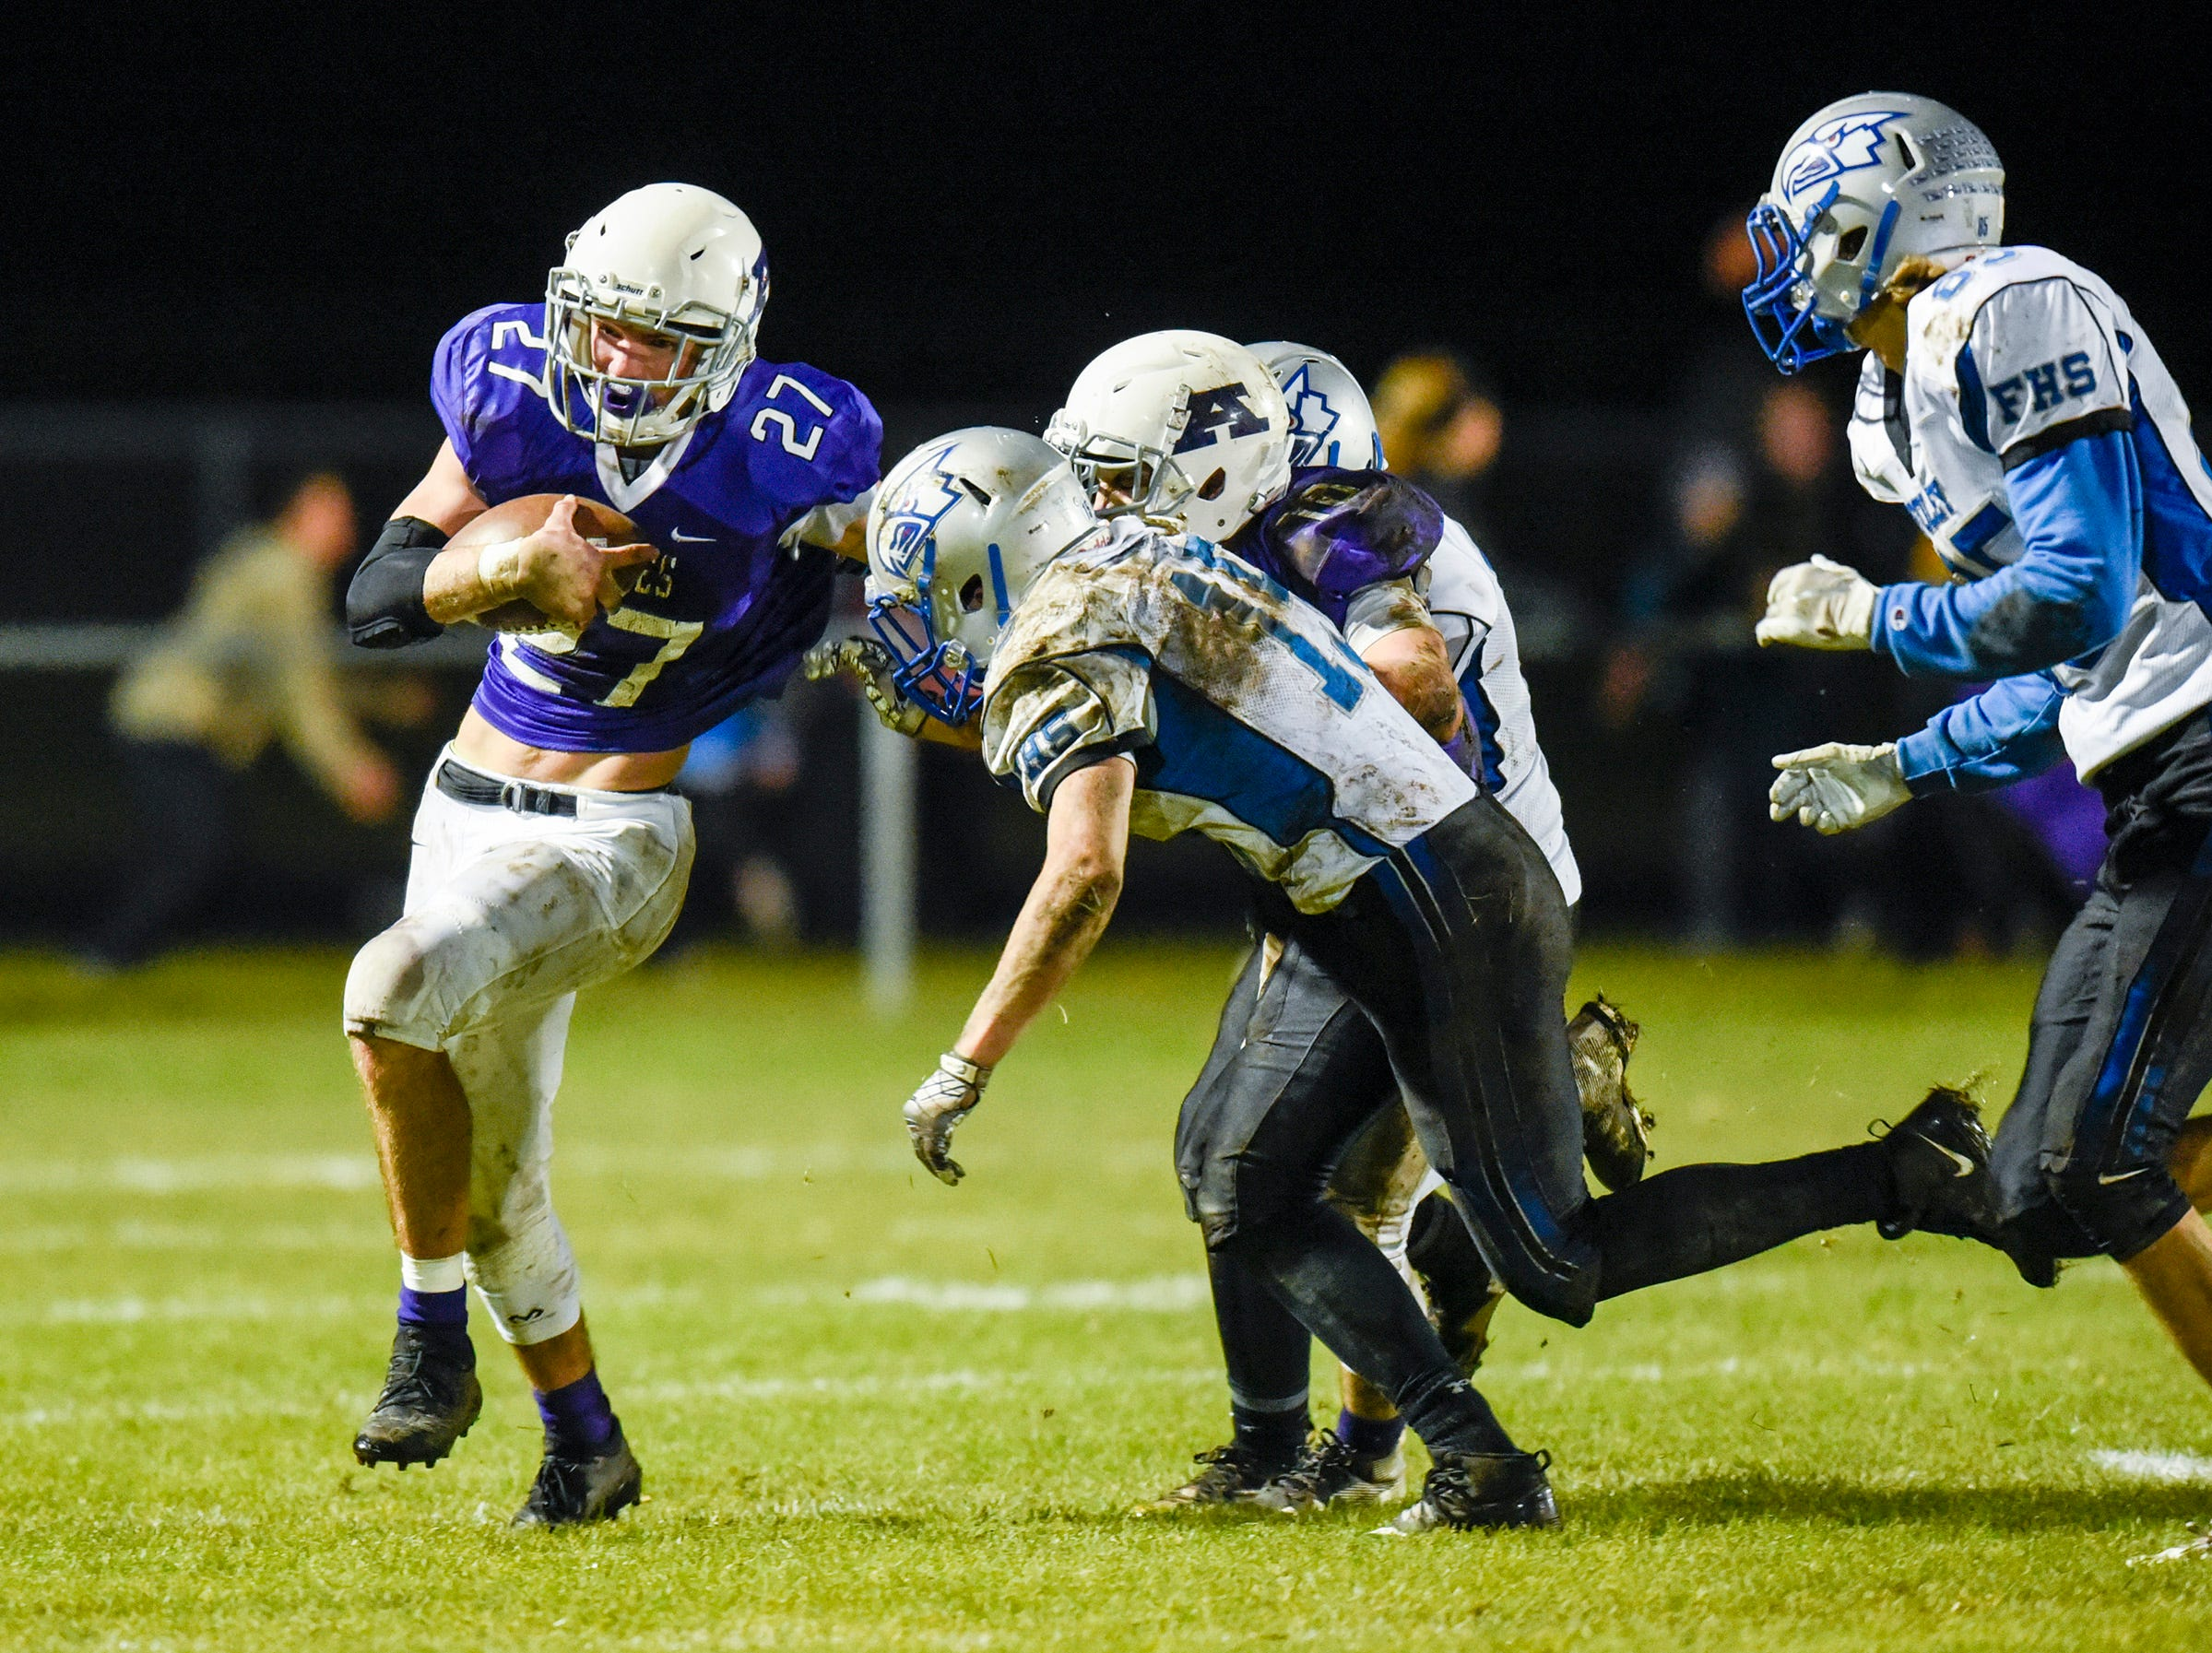 Albany running back Nolan Rueter breaks around the Foley defense during the first half Friday, Oct. 12, in Albany.